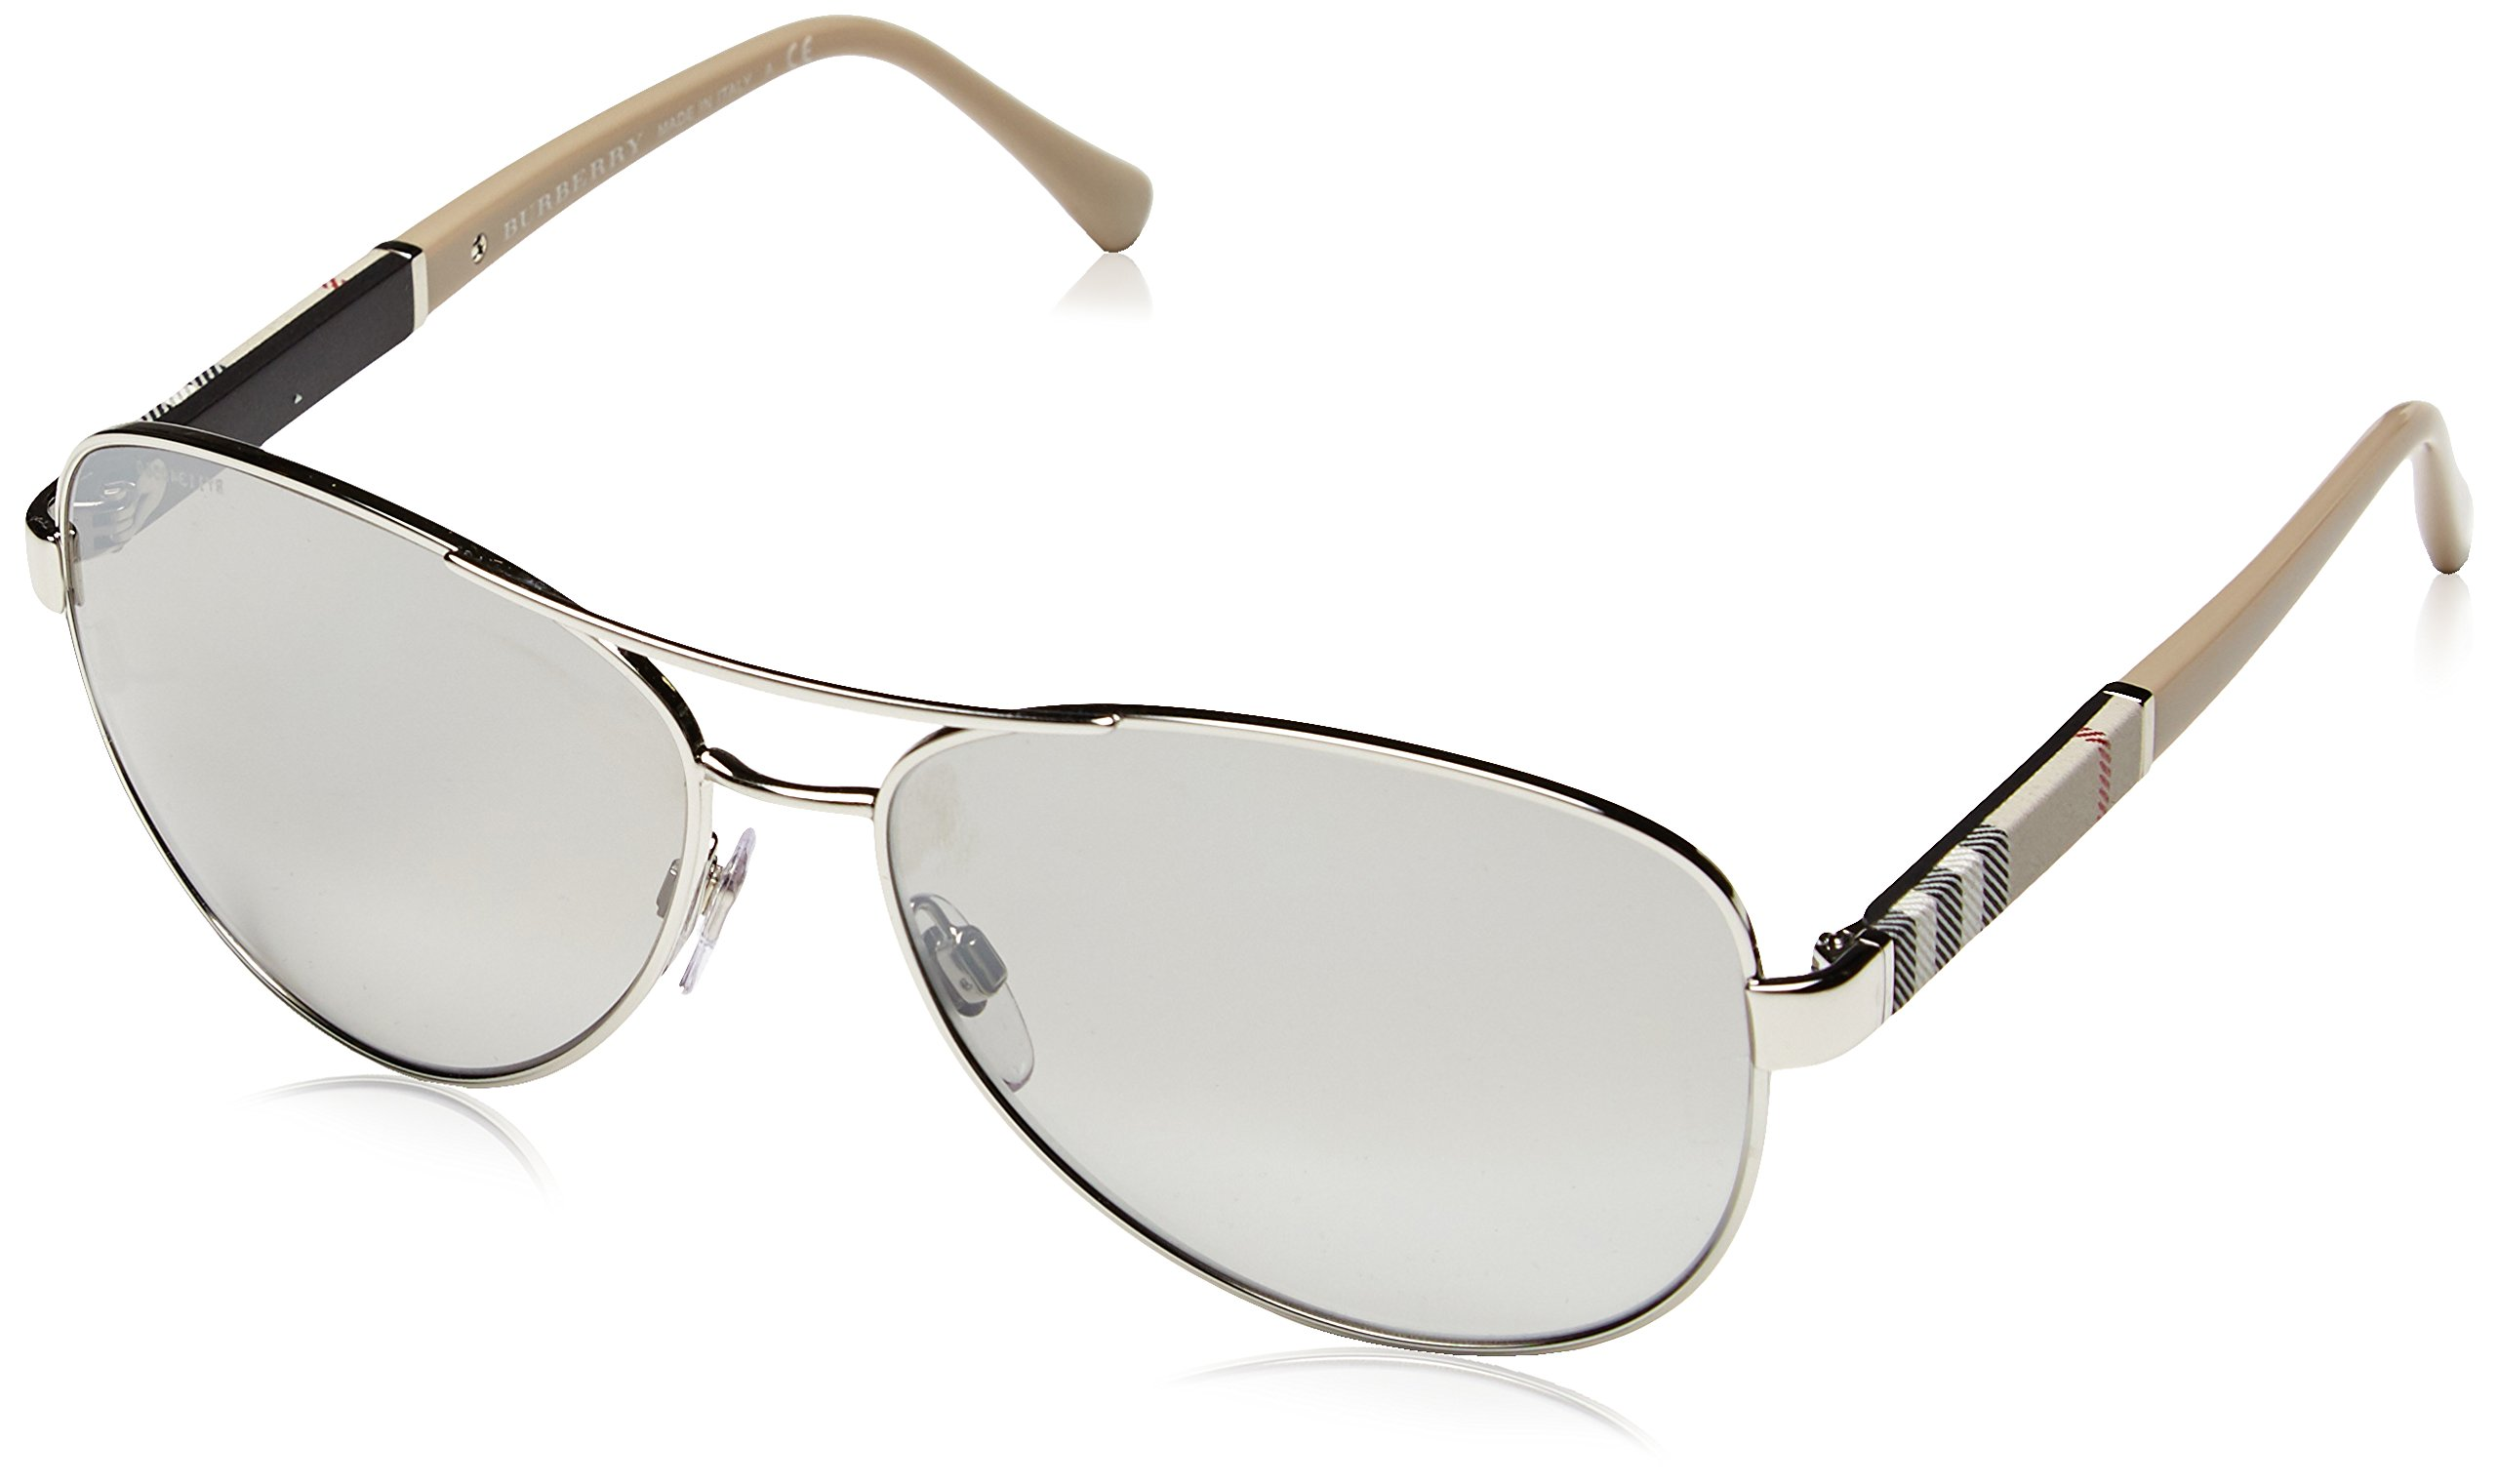 Burberry Unisex 0BE3080 Silver/Light Grey Silver Mirror